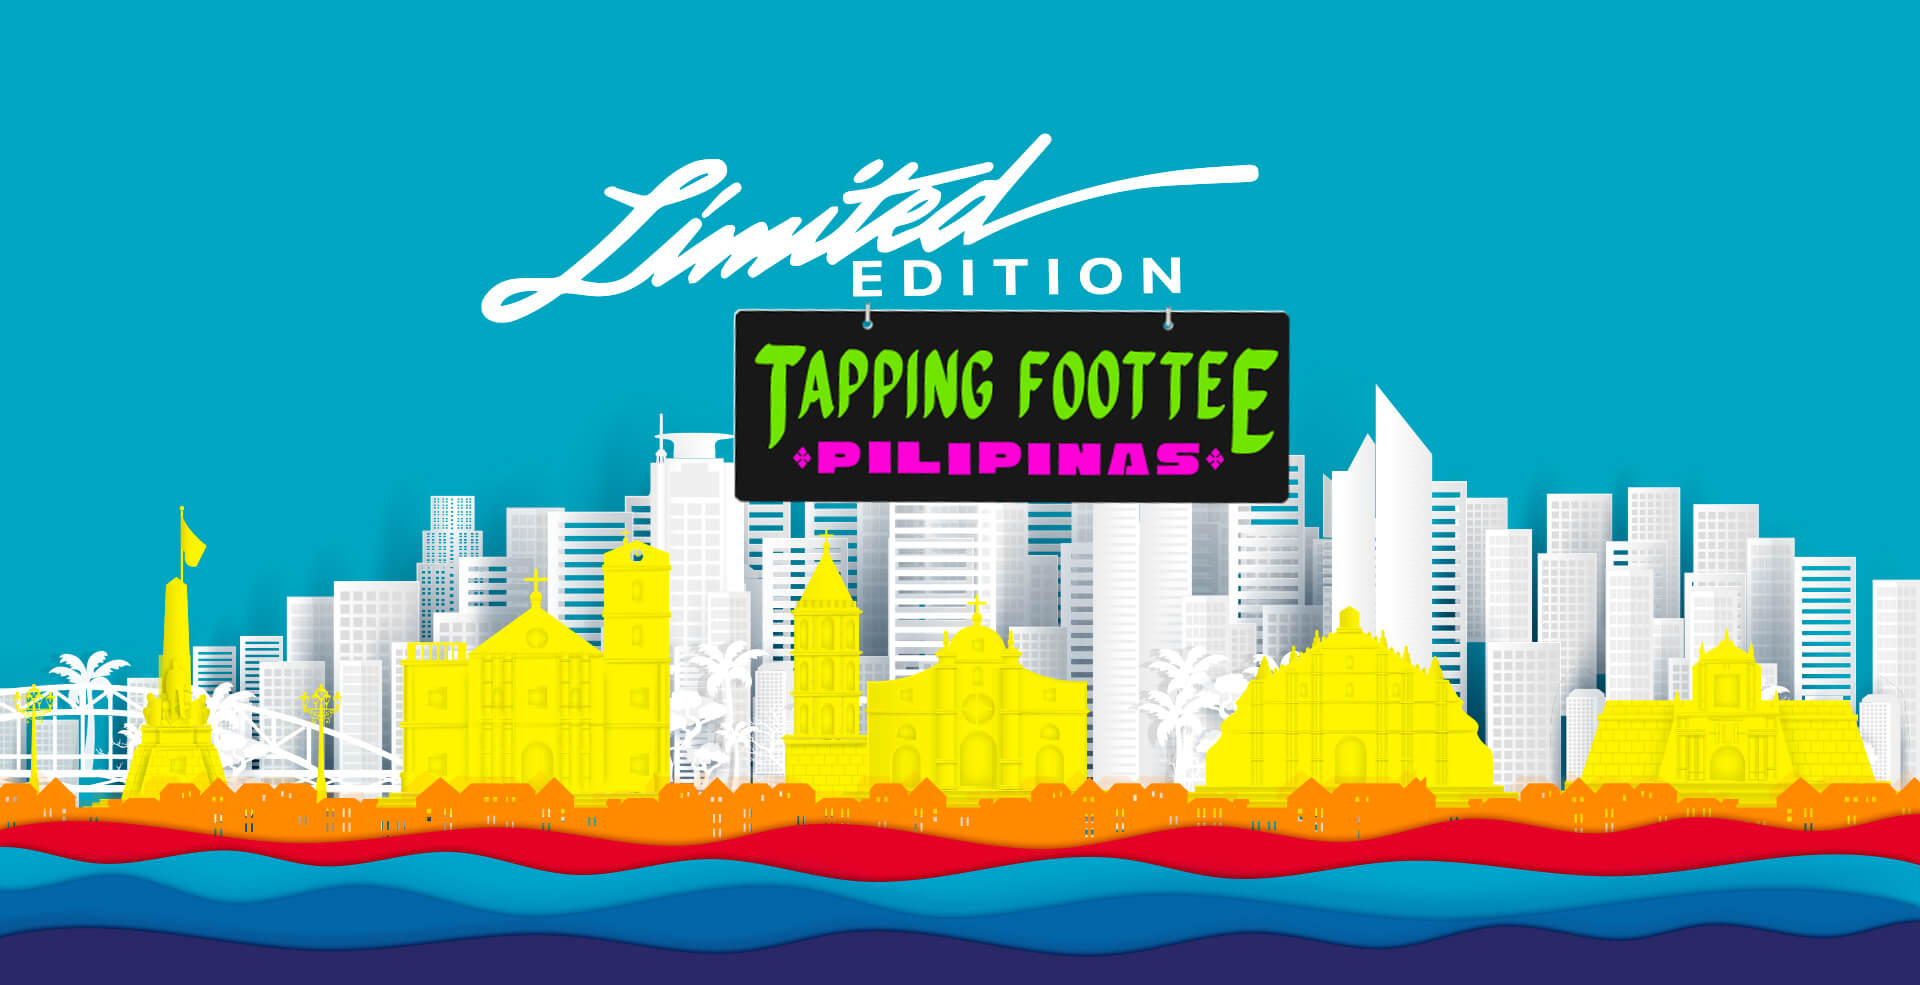 Tapping Foottee Pilipinas